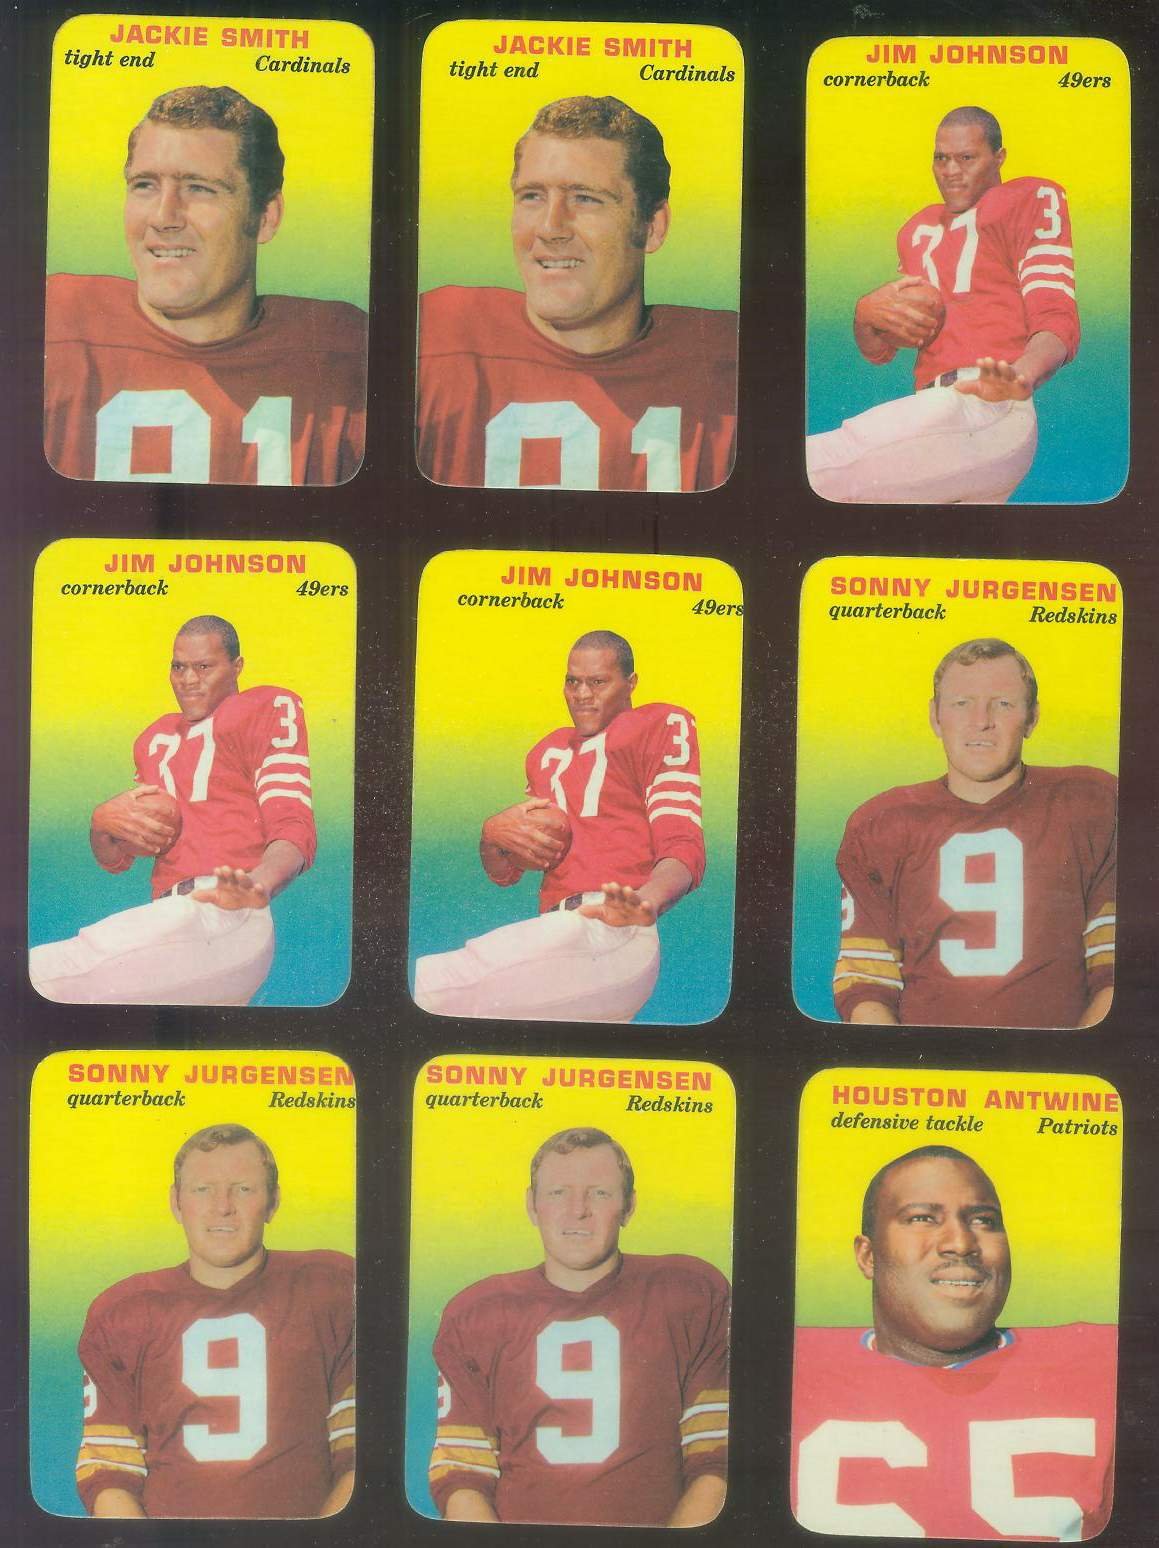 1970 Topps Glossy FB Inserts #20 Sonny Jurgensen (Redskins) Football cards value